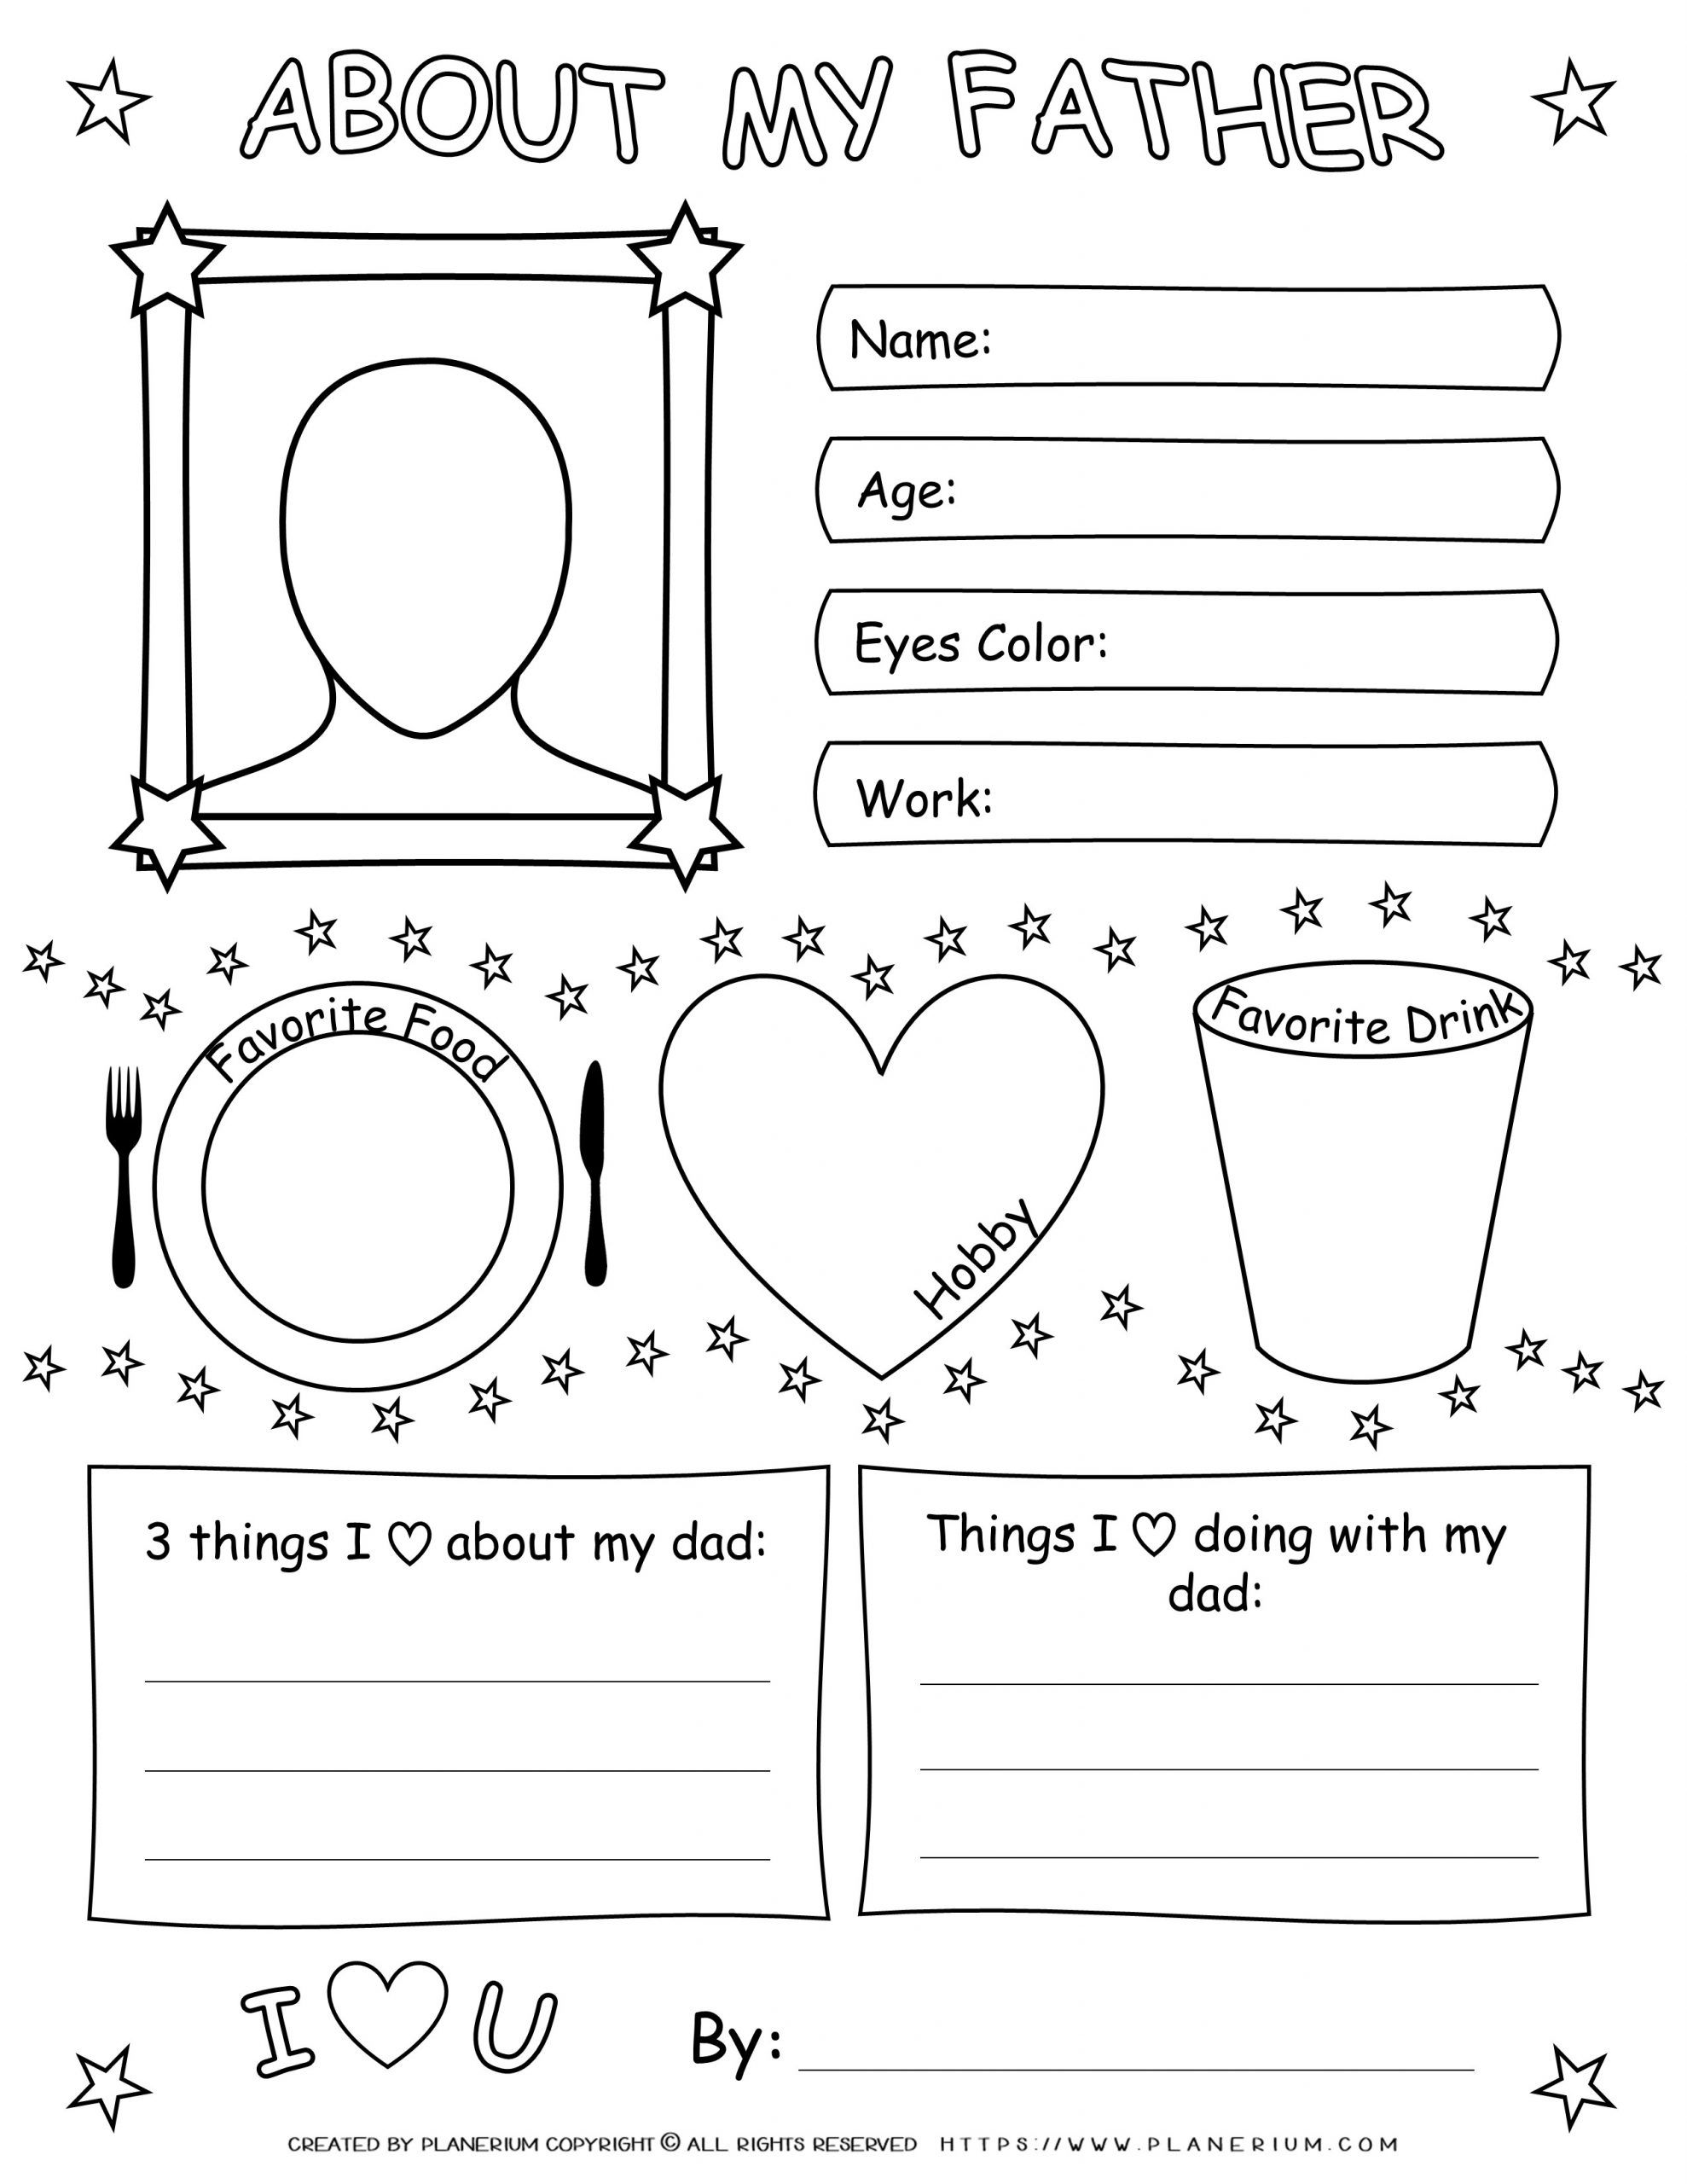 Father S Day Worksheet About My Father Planerium In 2021 Worksheets Free Father S Day Activities Worksheets [ 2560 x 1978 Pixel ]